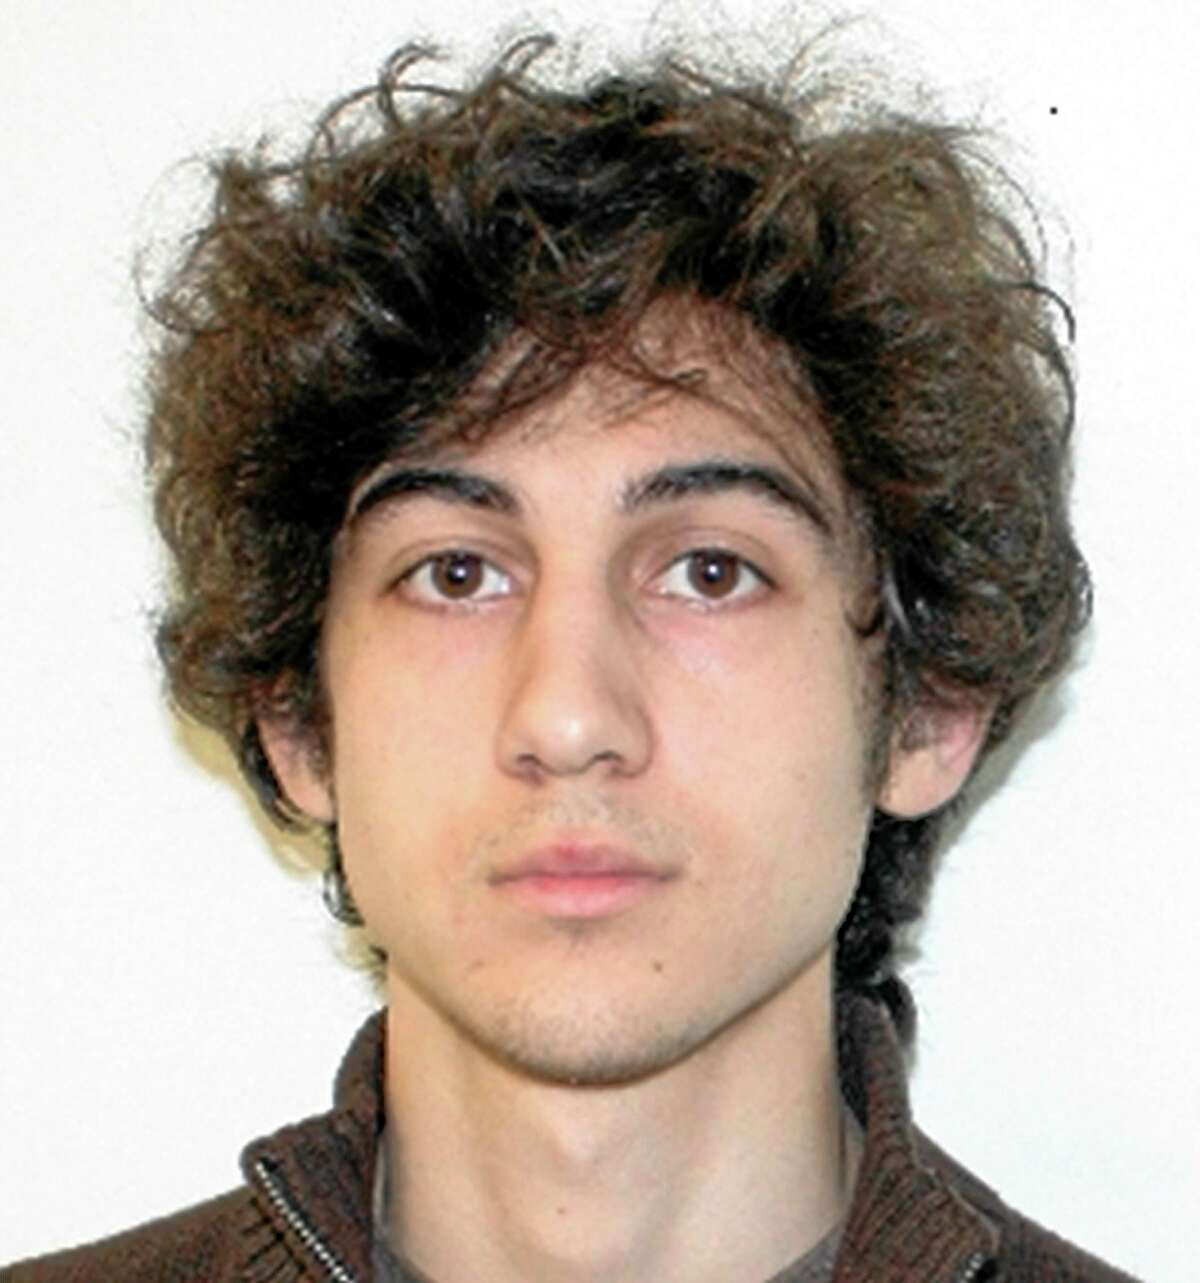 FILE - This file photo released Friday, April 19, 2013 by the Federal Bureau of Investigation shows Dzhokhar Tsarnaev, surviving suspect in the Boston Marathon bombings. Lawyers for Tsarnaev will ask a judge to address the death penalty protocol during a status conference in federal court Monday, Sept. 23, 2013, in Boston. Tsarnaev is accused in two bombings that killed three people and injured more than 260 others near the finish line of the April 15 marathon. (AP Photo/Federal Bureau of Investigation, File)